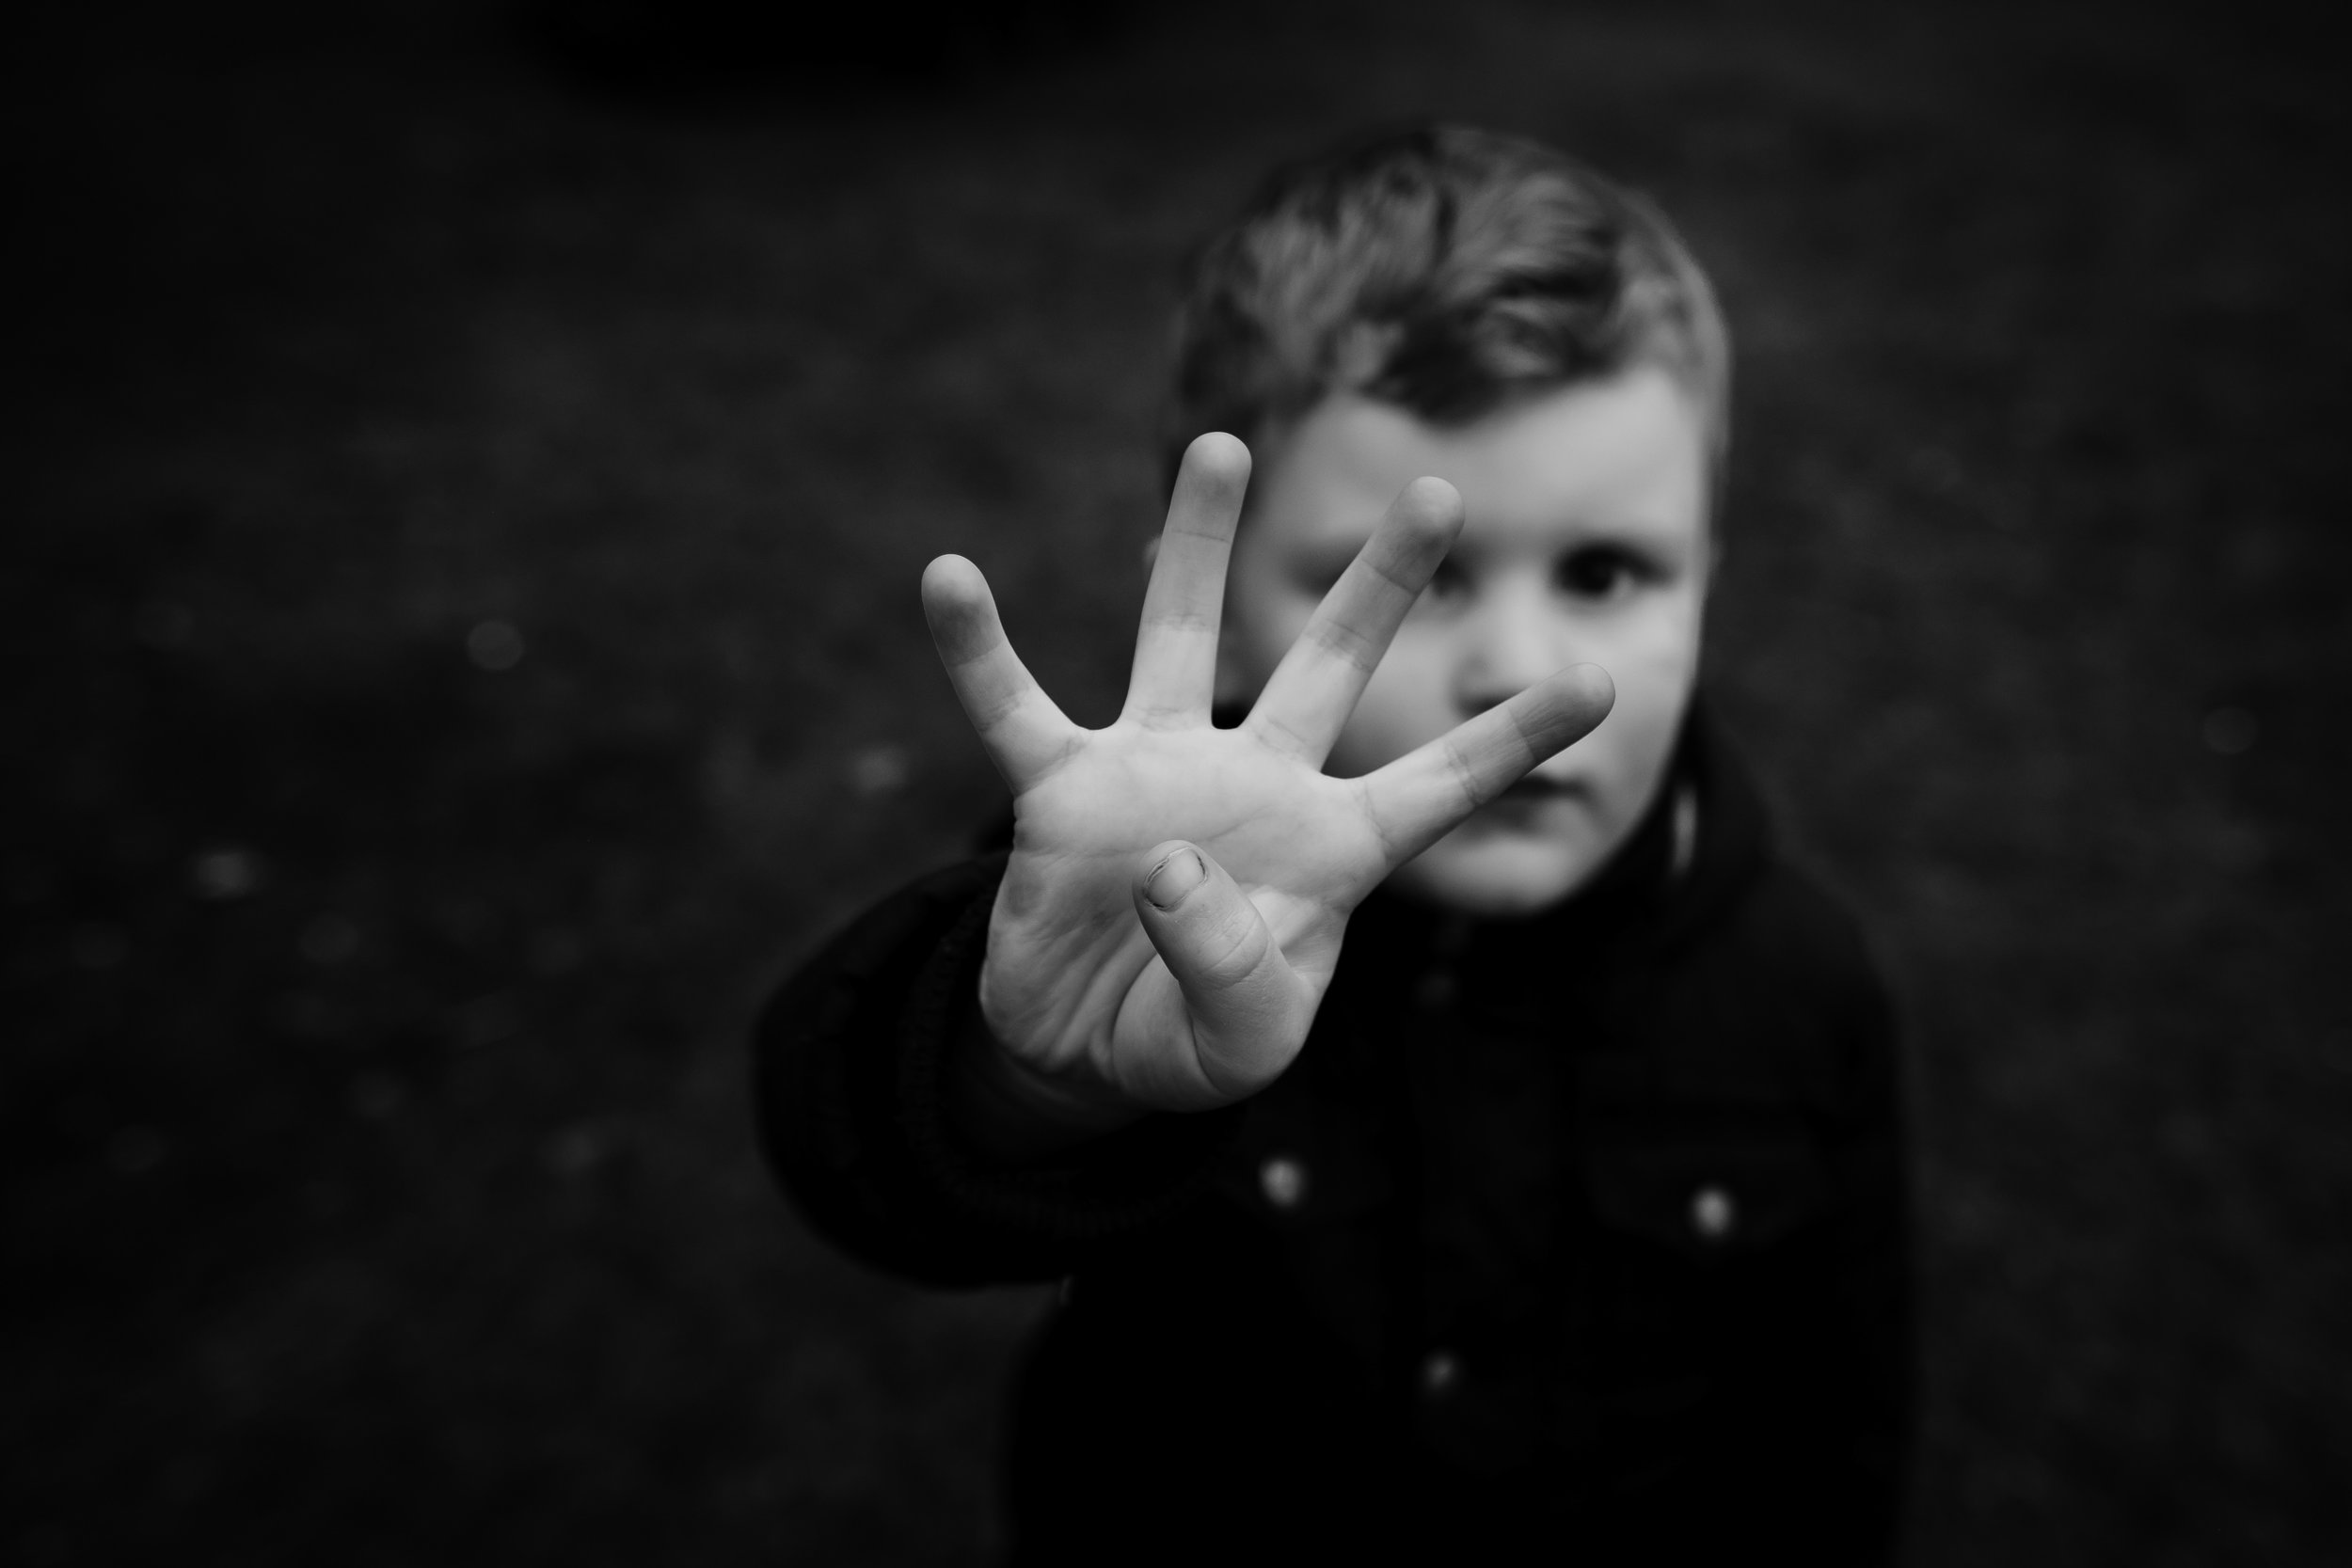 boys holds four fingers up to indicate his age